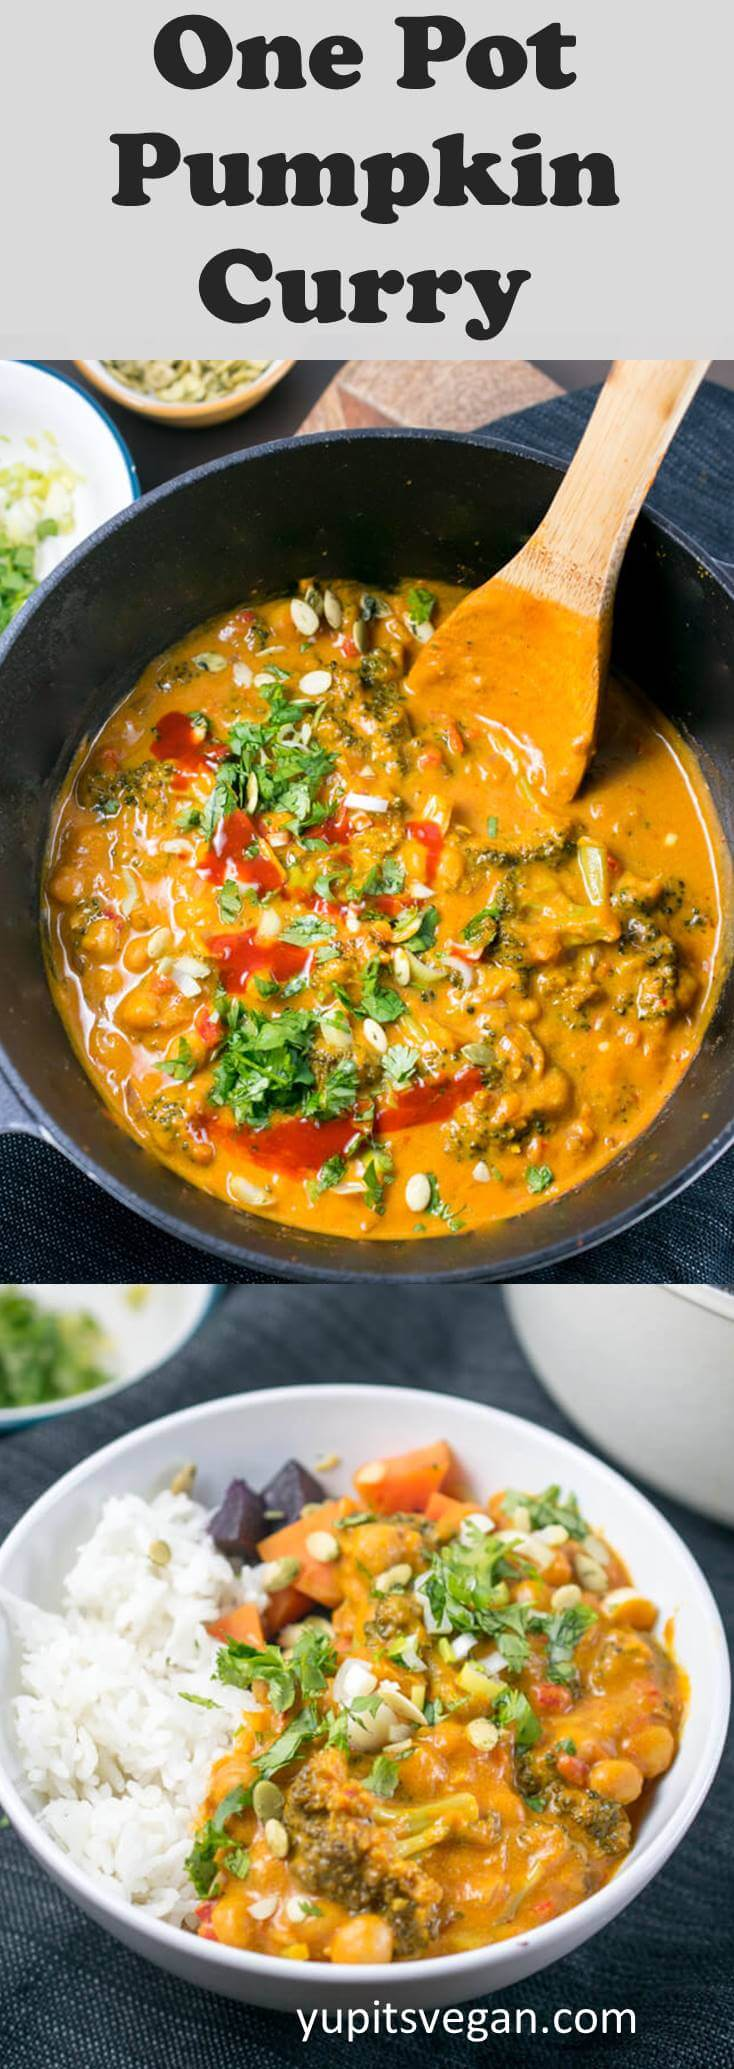 Easy One Pot Pumpkin Curry with chickpeas and broccoli. Mix and match other veggies and proteins in this flavorful Thai red curry that uses pumpkin puree for flavor, sweetness, and added nutrition. Naturally vegan, gluten-free, vegetarian, soy-free.